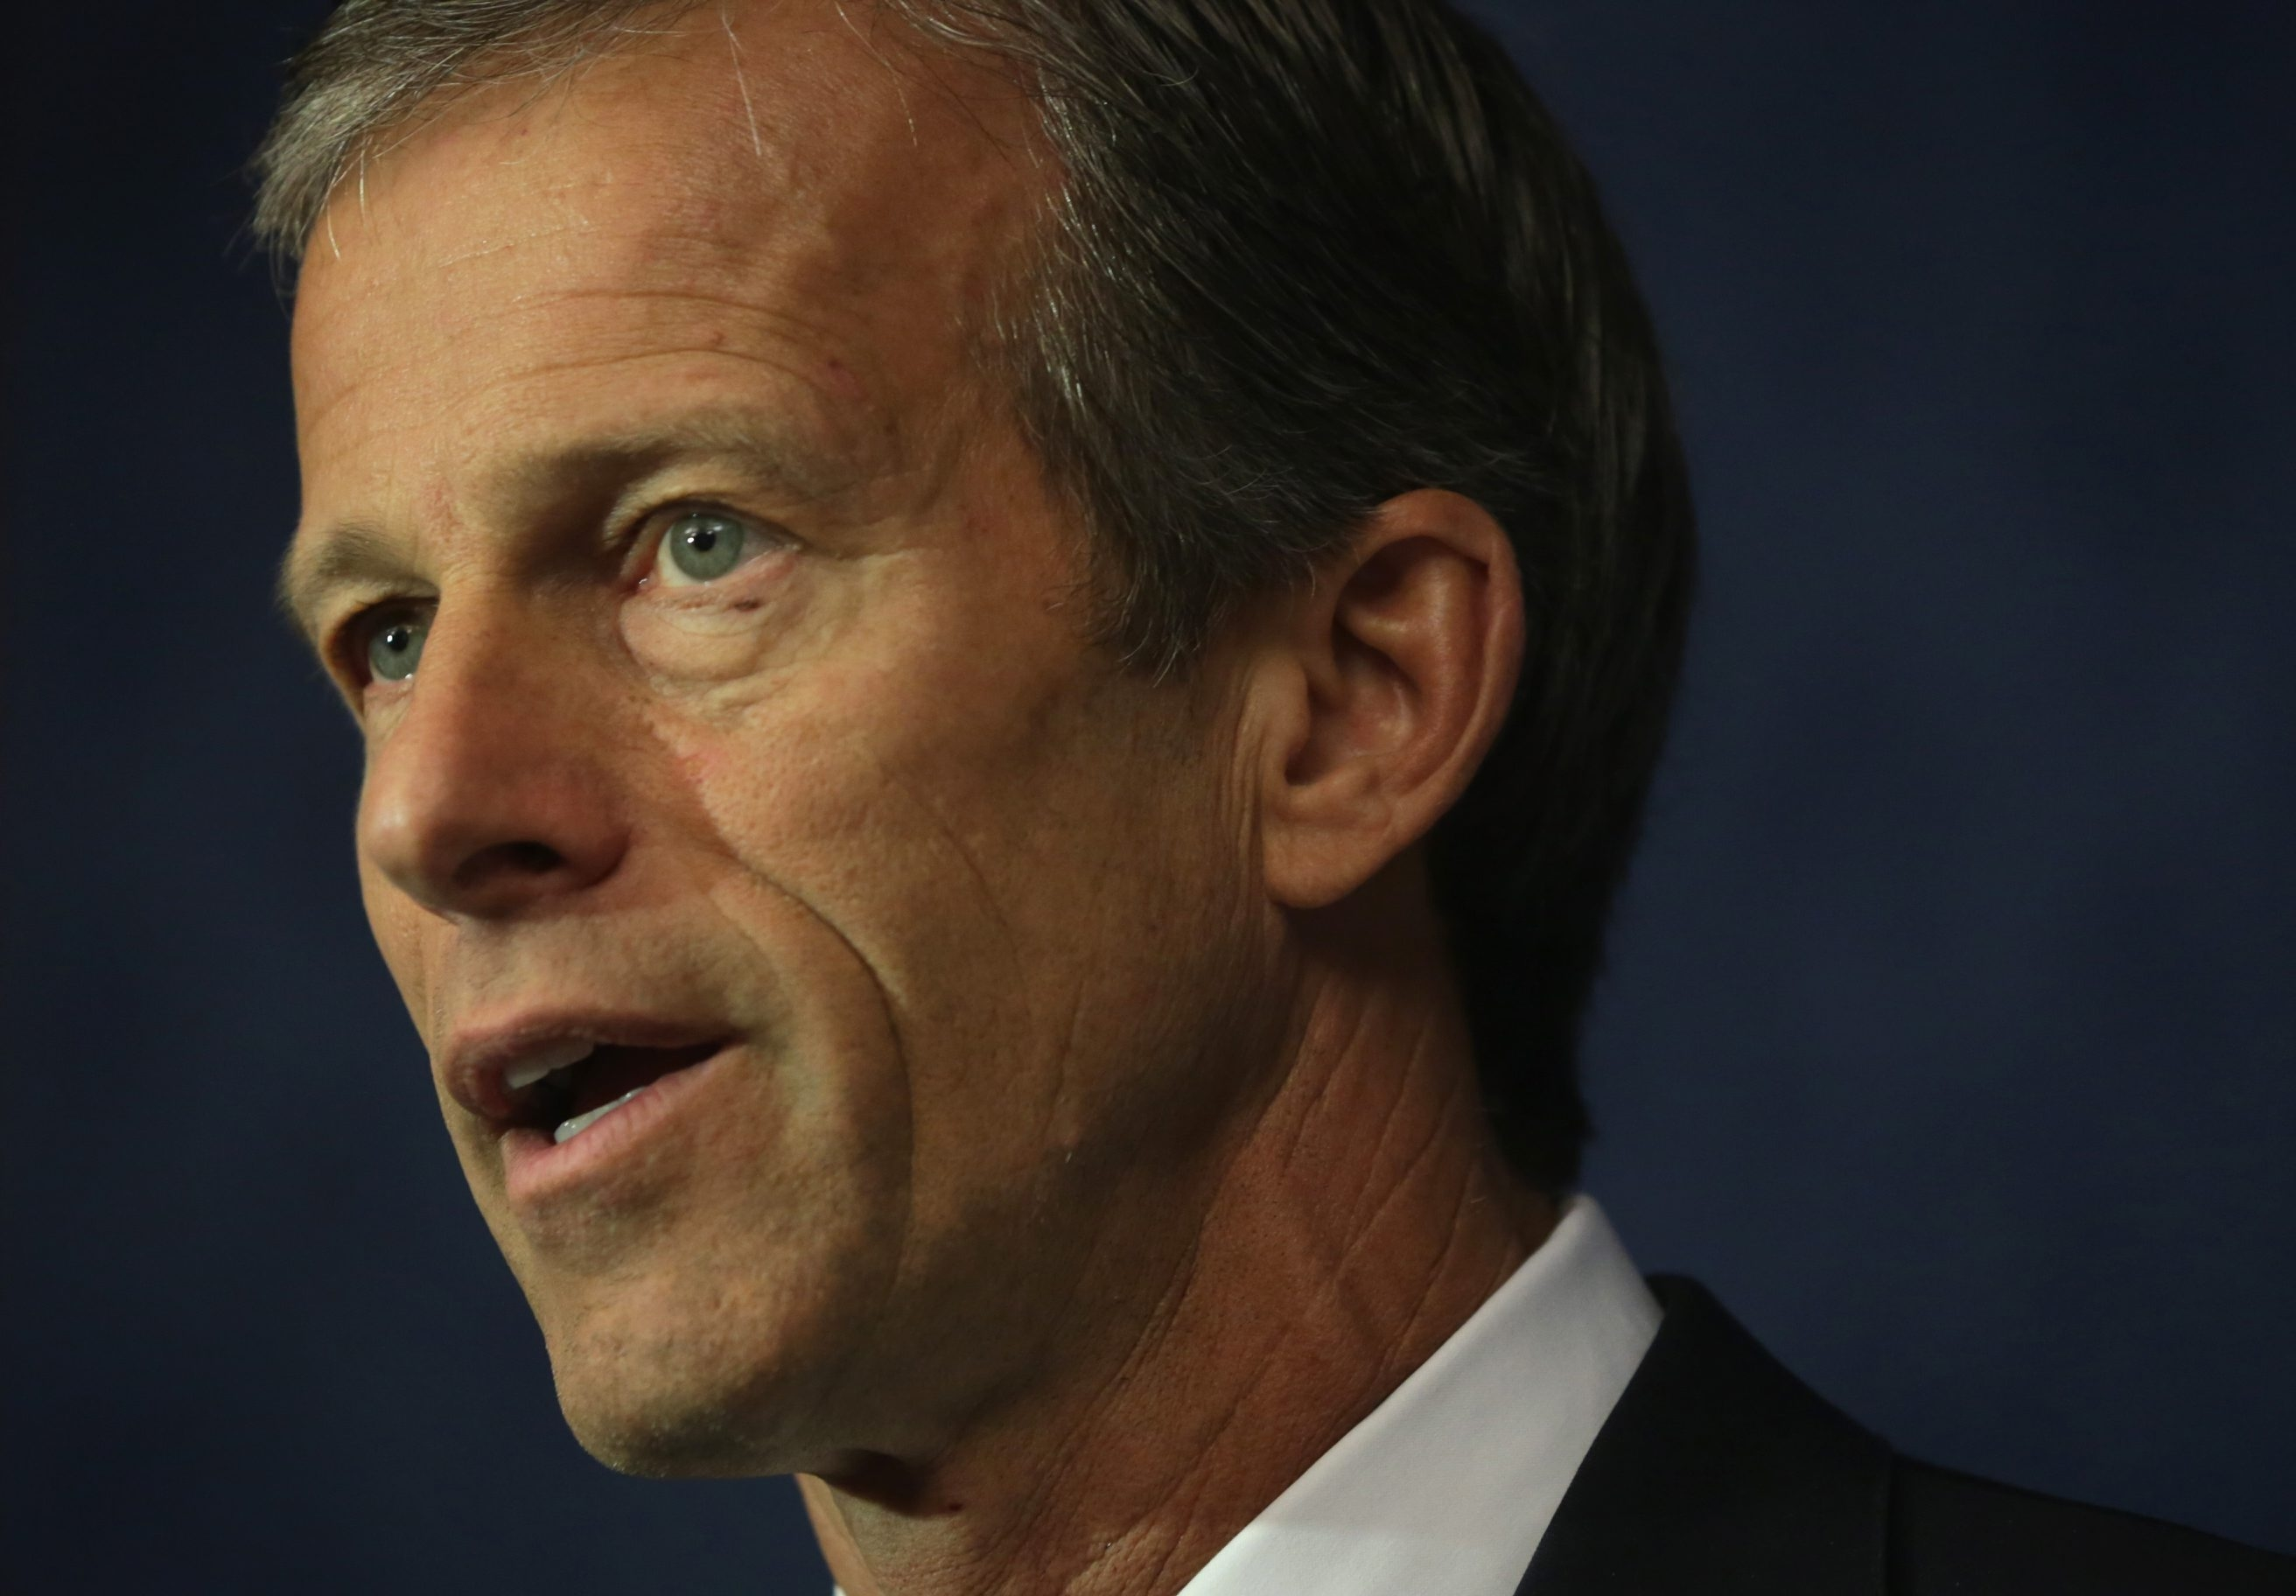 Senators John Thune and Angus King are leading. U.S. Sen. John Thune (R-SD) speaks during a news conference May 14, 2015 on Capitol Hill in Washington, DC. Senate Republicans were joined by agriculture industry leaders urged passage that could benefit the agriculture community to be included in the trade promotion authority legislation.  (Photo by Alex Wong/Getty Images)